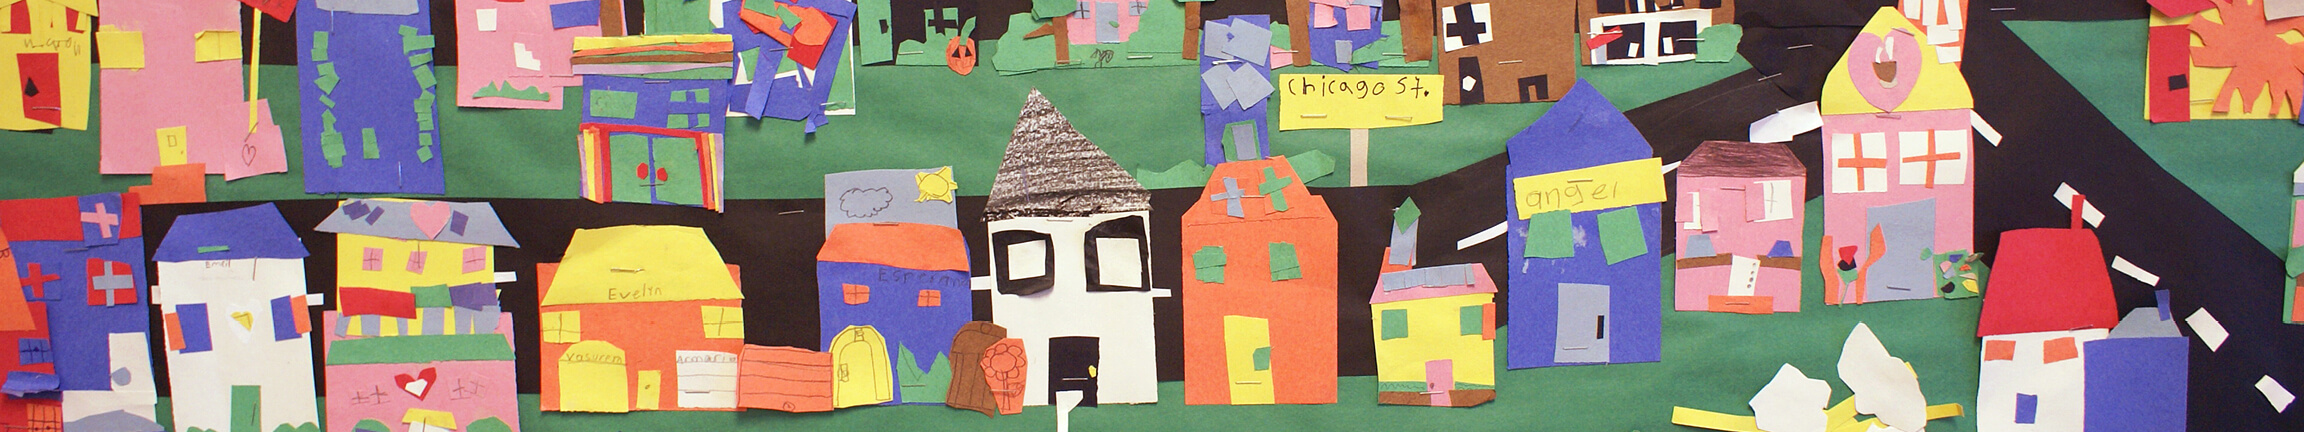 A collage of a city street, made by local students.